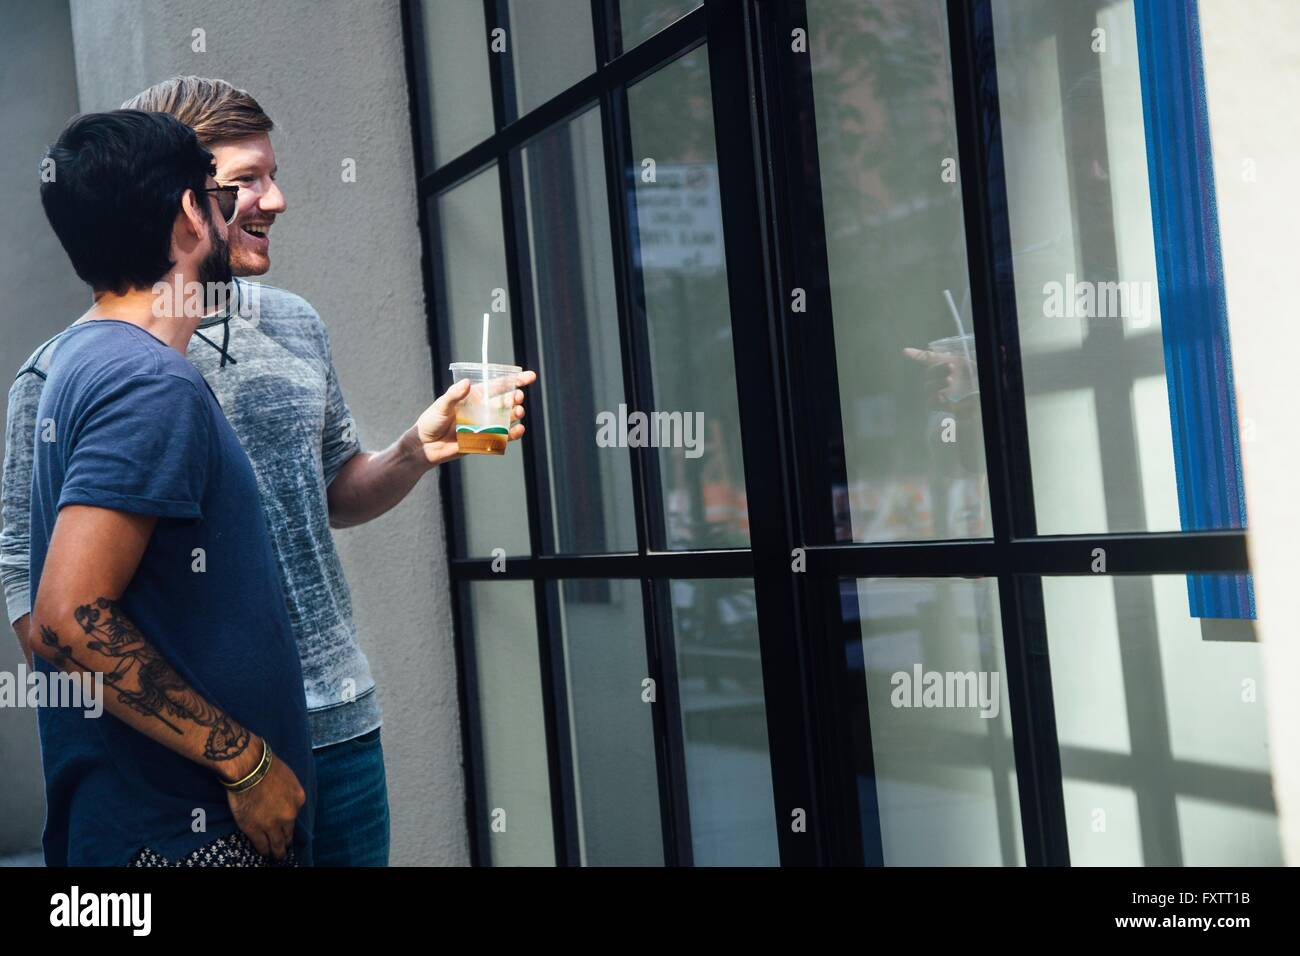 Homme couple looking at city shop window Photo Stock